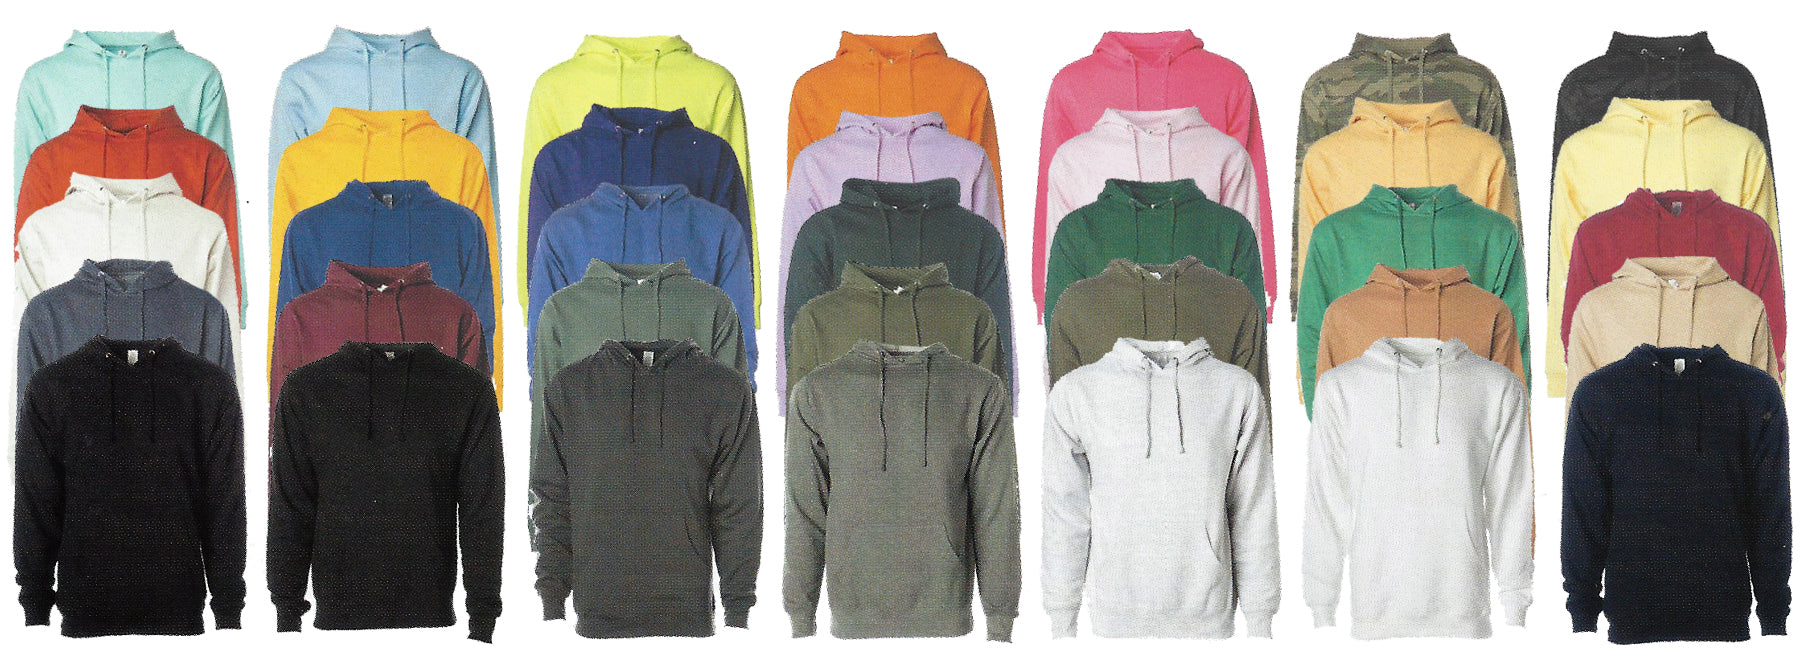 Wholesale Apparel Multiple Colors and Sizes For Hoodies, Outerwear, Jackets and Joggers